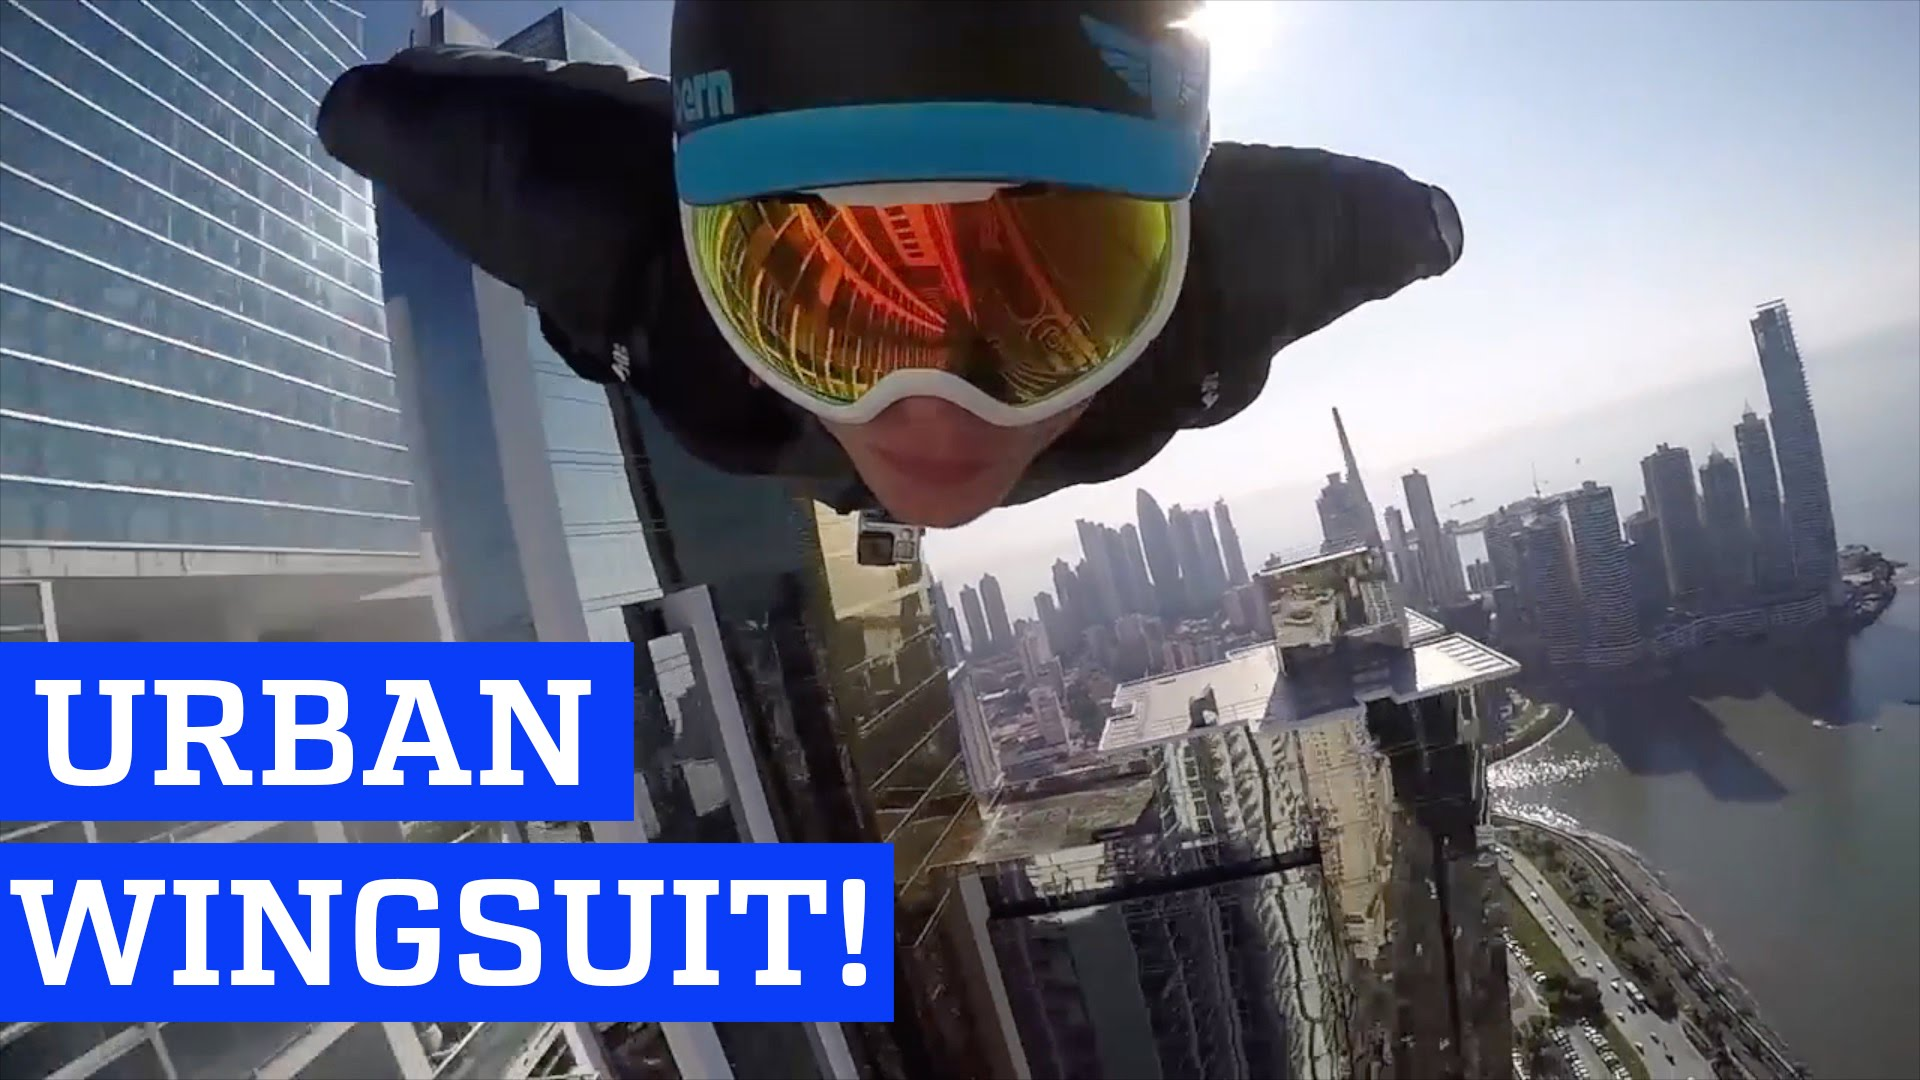 Urban Wingsuit Flying by Skyscrapers | PEOPLE ARE AWESOME - YouTube